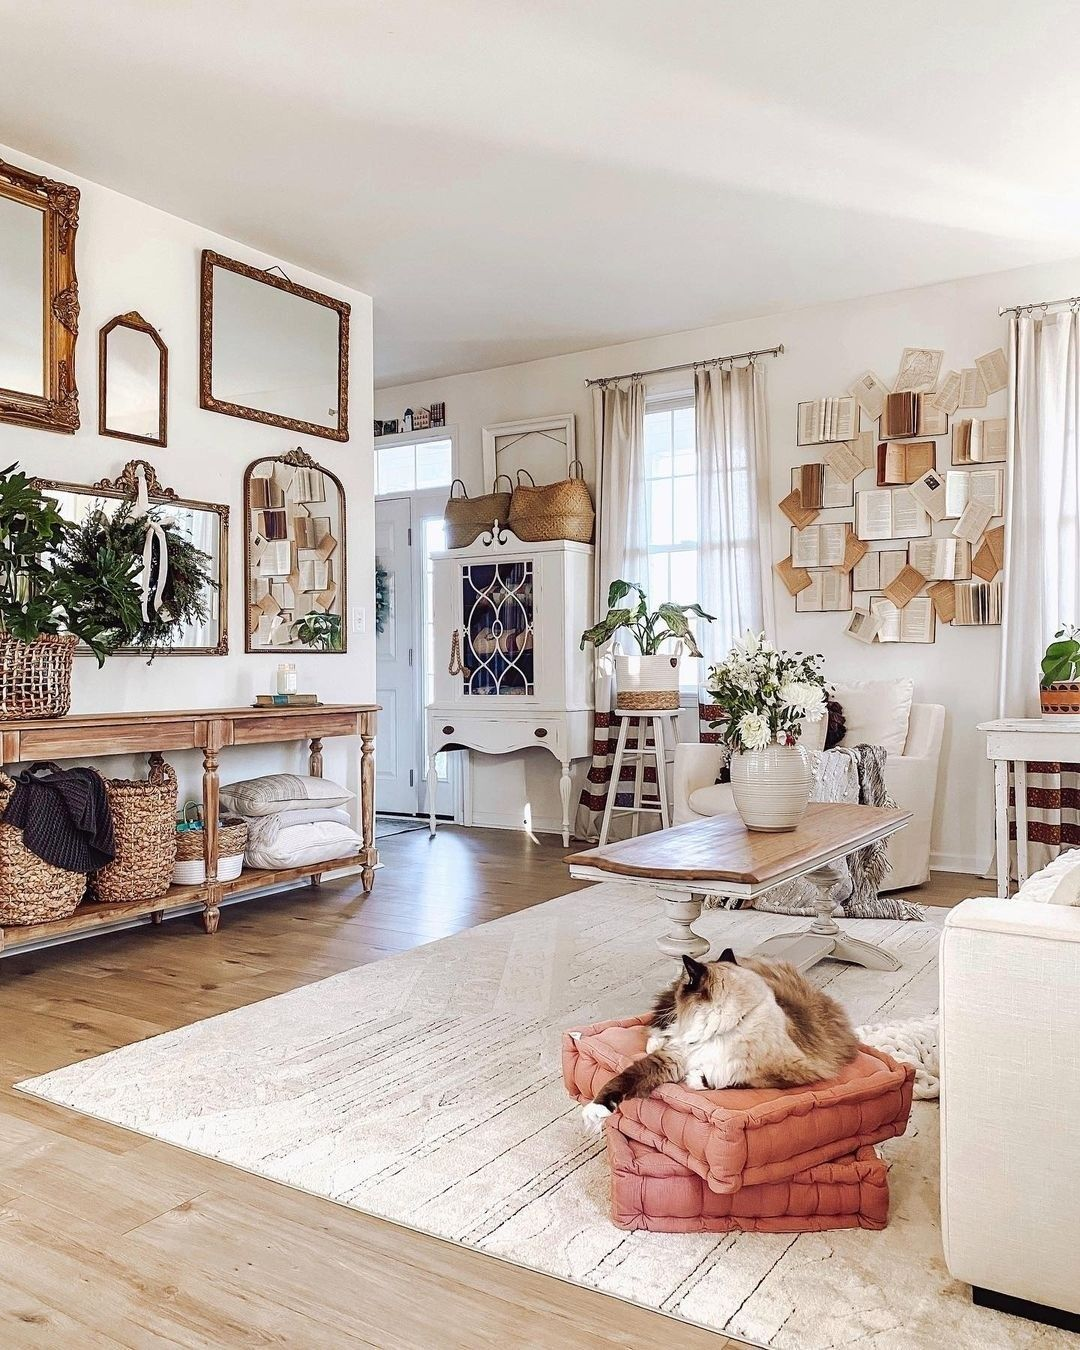 Decorsteals Shared A Photo On Instagram Giveaway Time Raise Your Hand If You Are Loving In 2021 Whimsical Living Room Farmhouse Decor Aesthetic Room Decor Whimsical living room decor